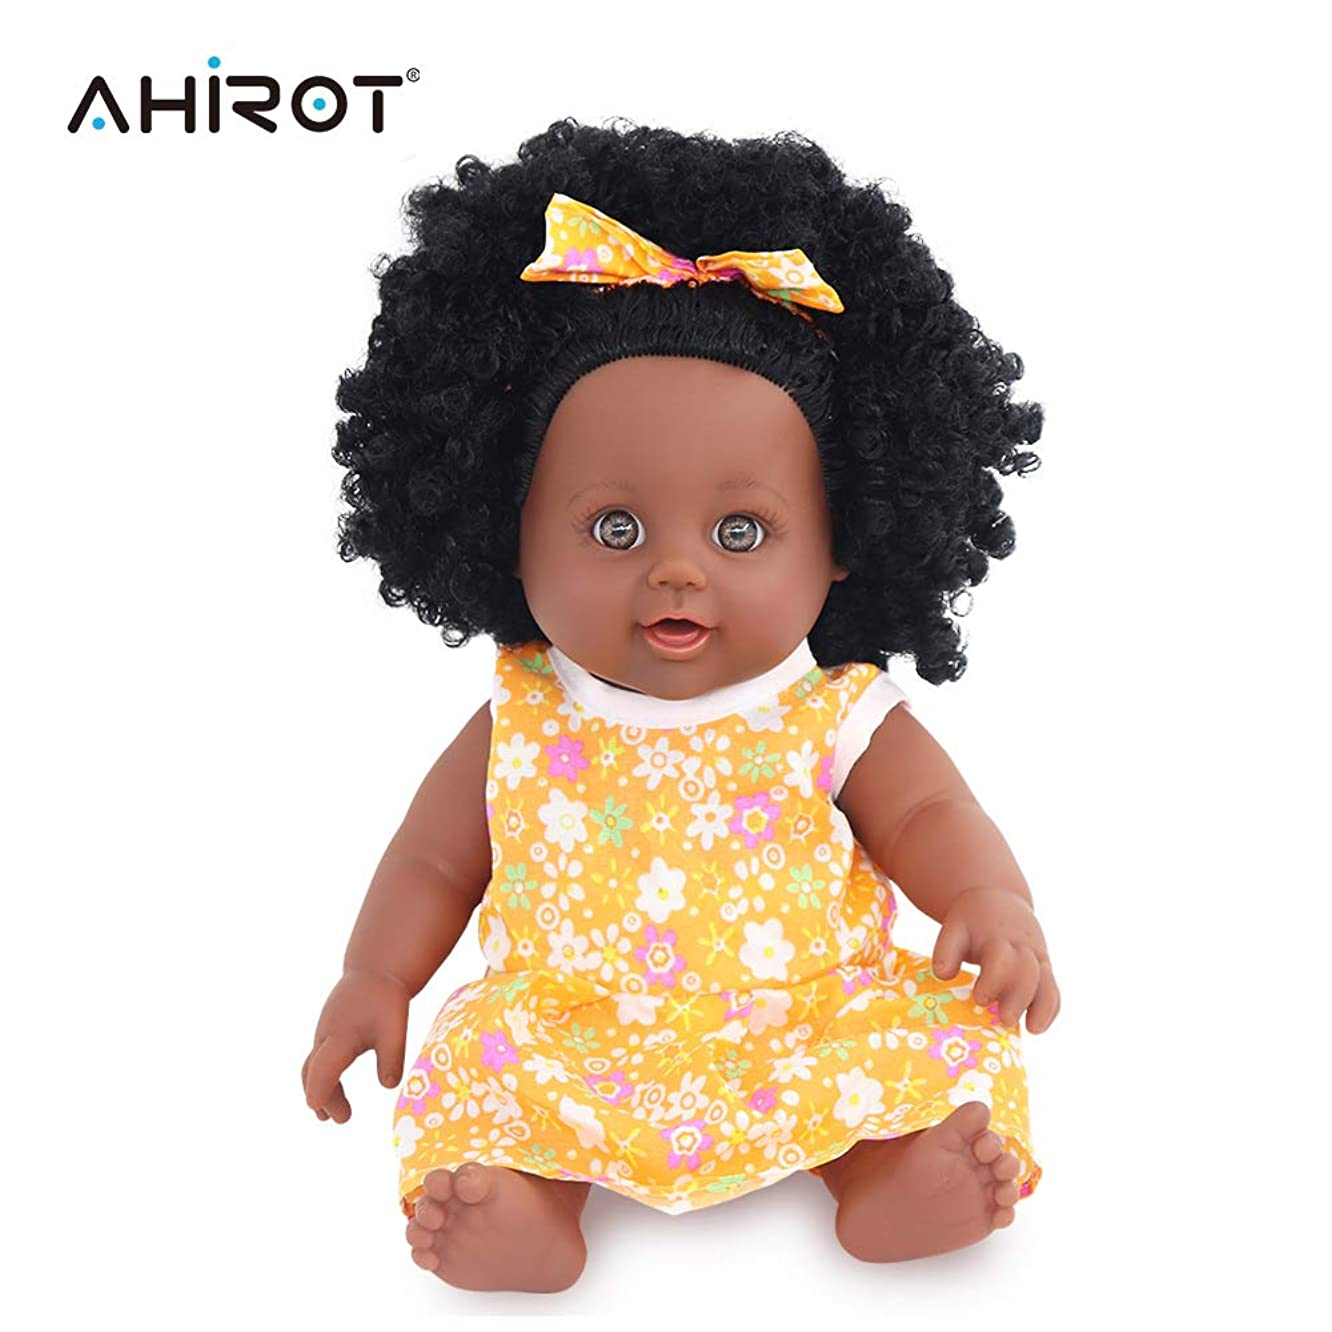 Black Girl Dolls Fashion African American Doll Lifelike 12 inch Play Dolls for Kids Perfect for Gift